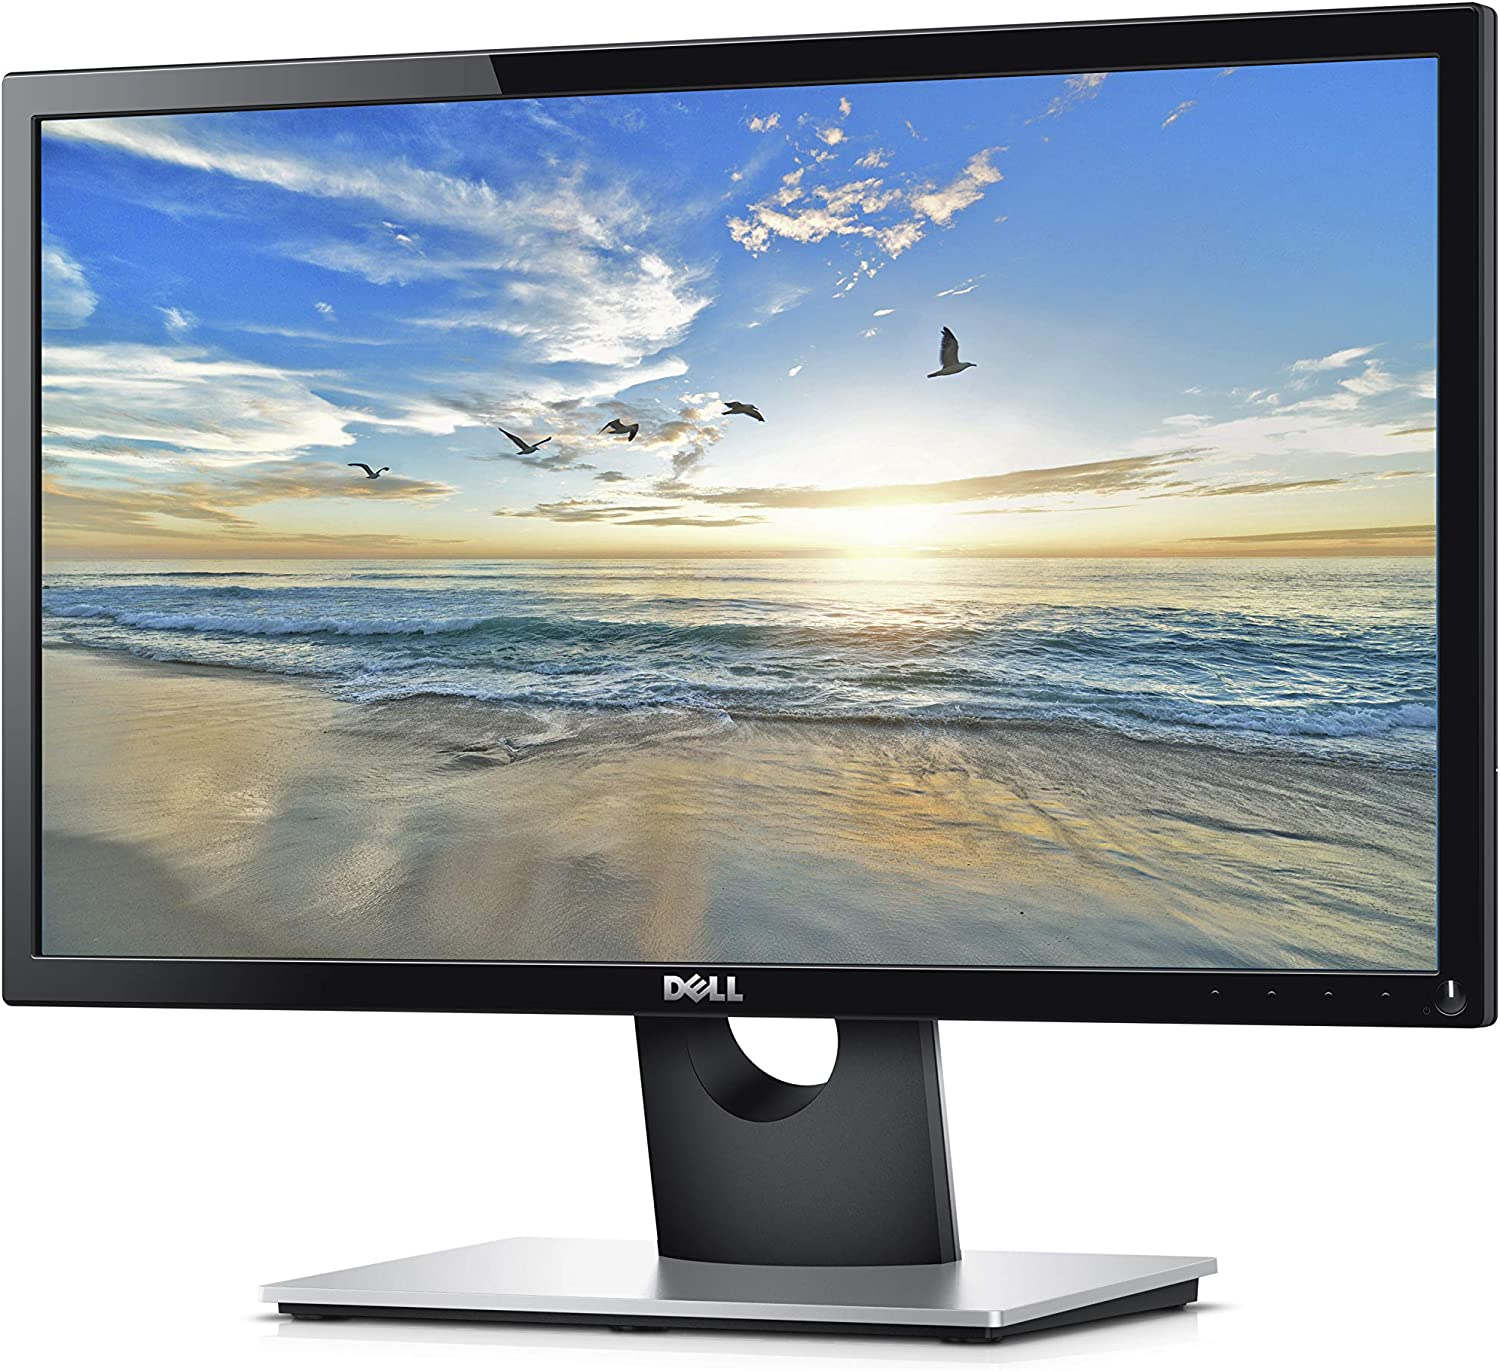 Flat Screen Monitor Computer Video Game Full HD 22 Inch LCD LED 16:9 NEW